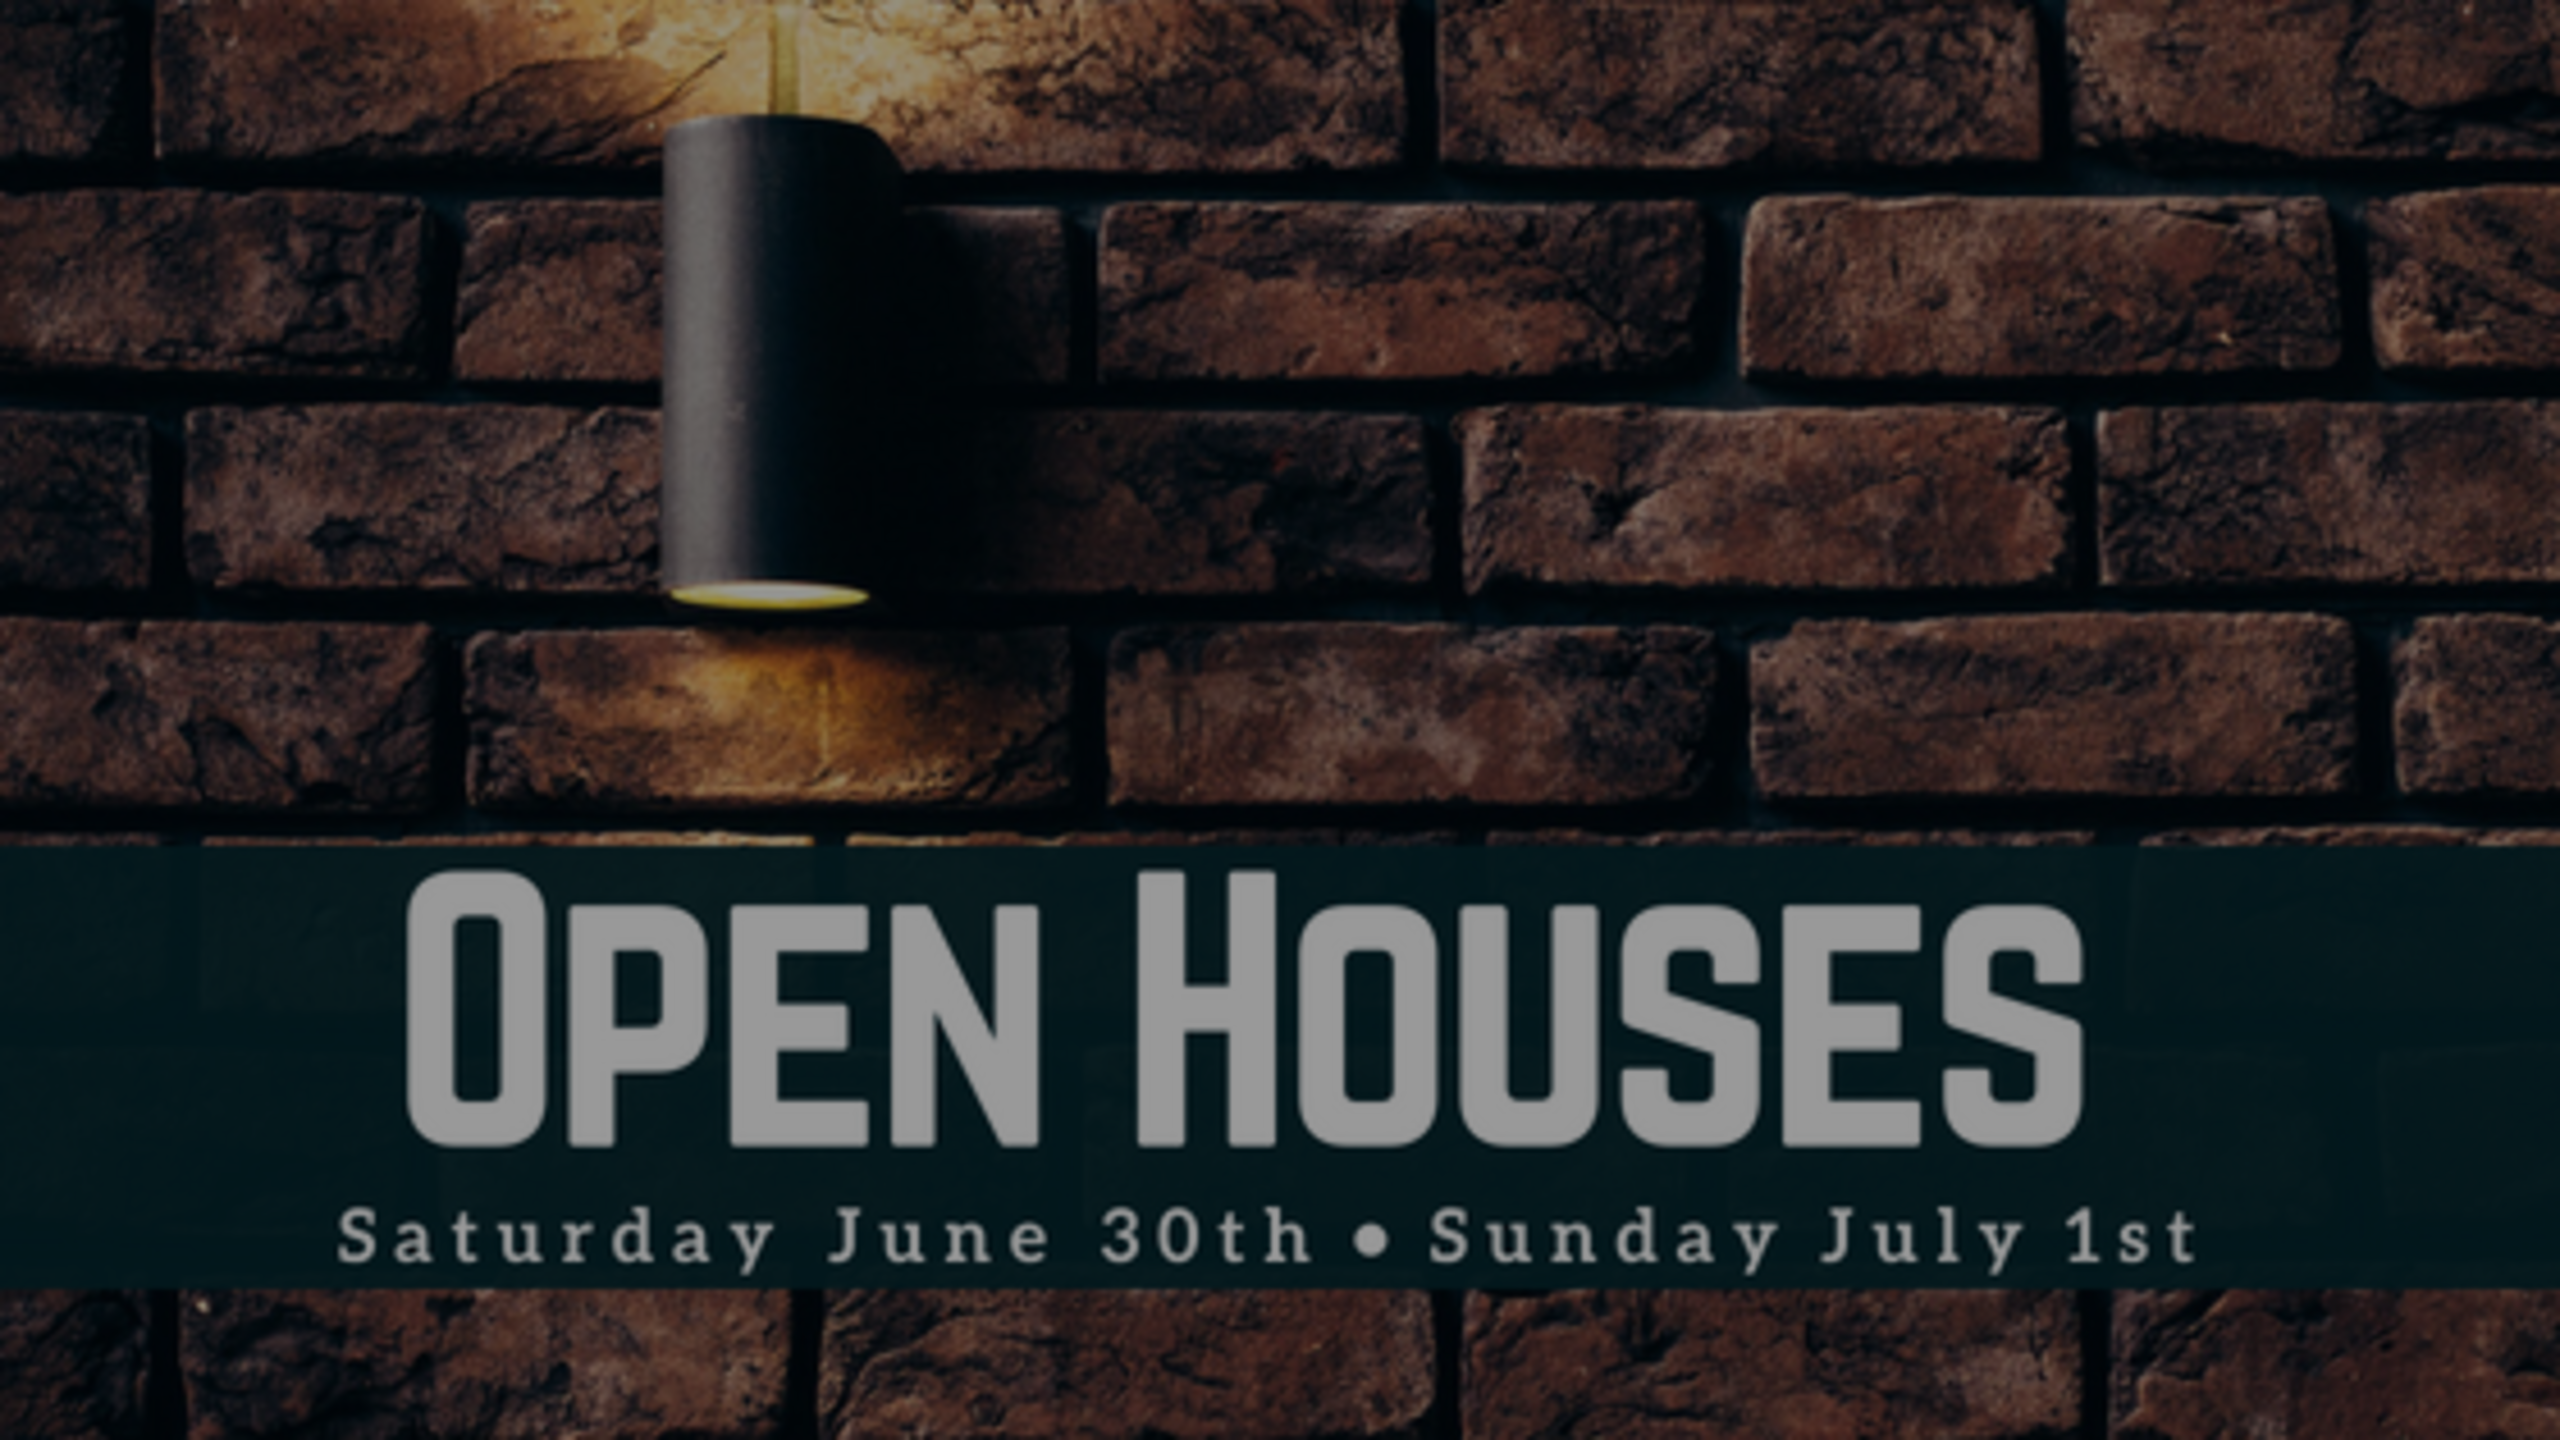 Our Open Houses: Weekend of 6/30 + 7/1